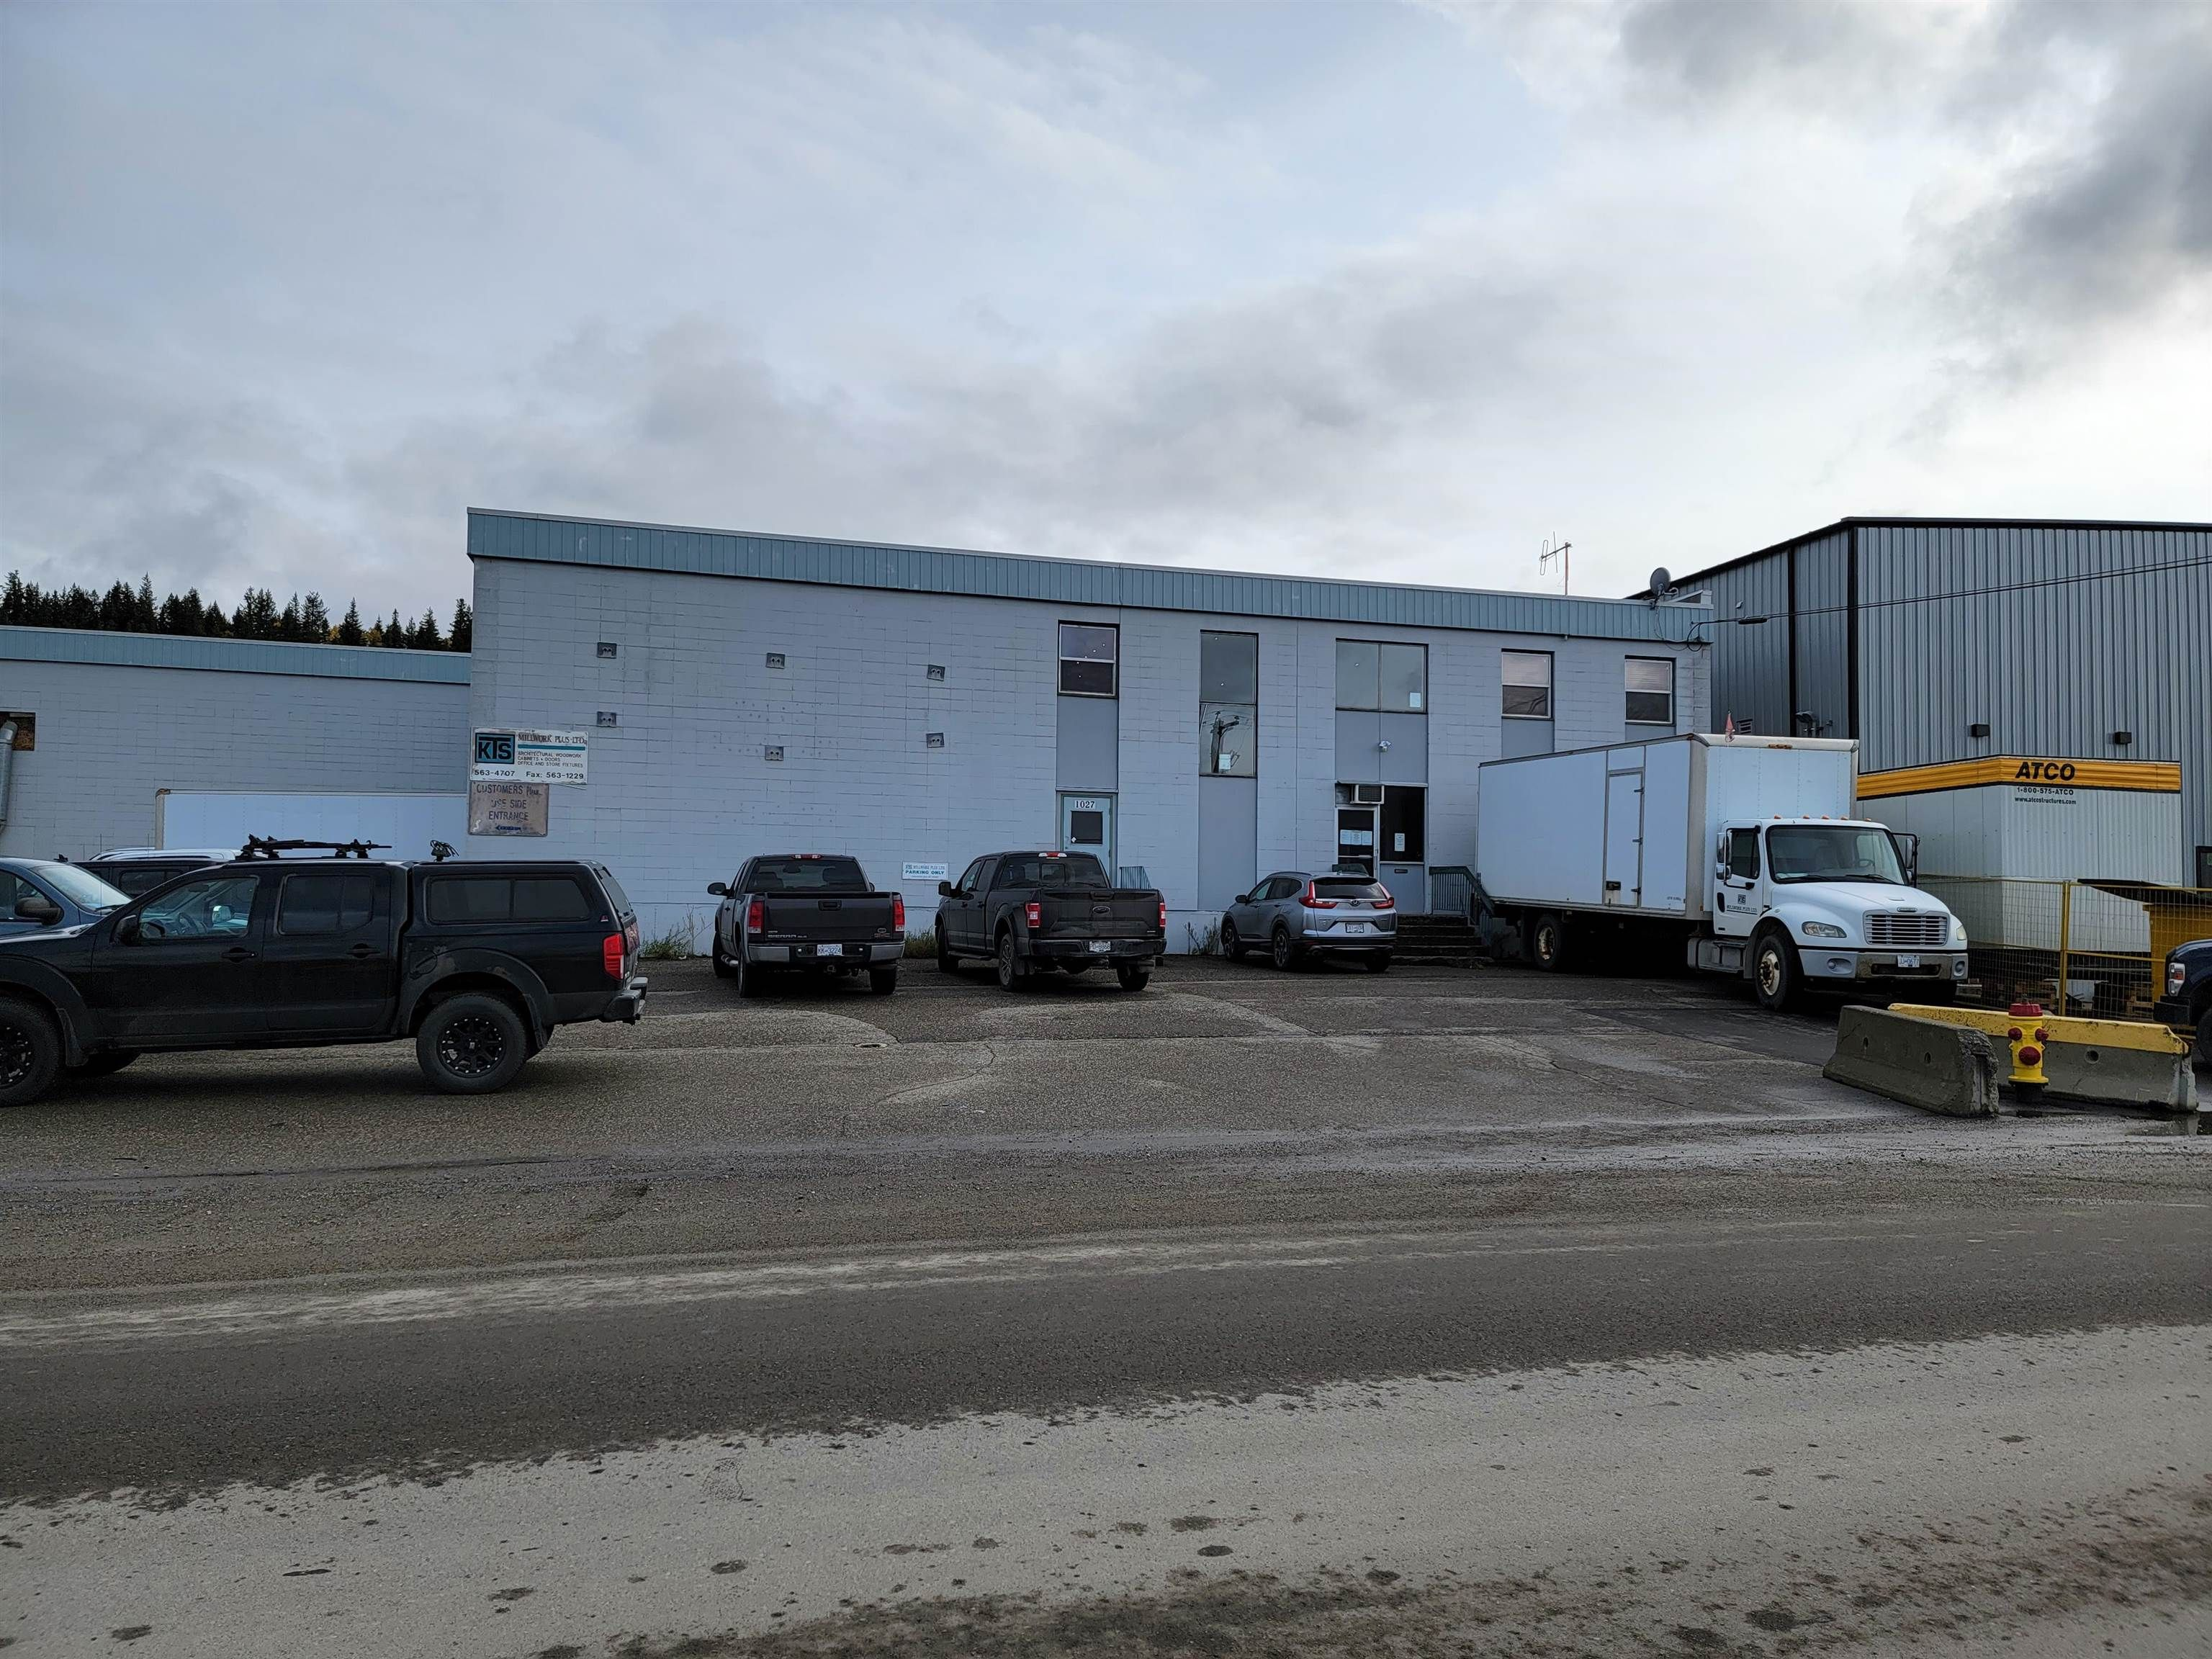 Main Photo: 1027 EASTERN Street in Prince George: BCR Industrial Industrial for lease (PG City South East (Zone 75))  : MLS®# C8037206